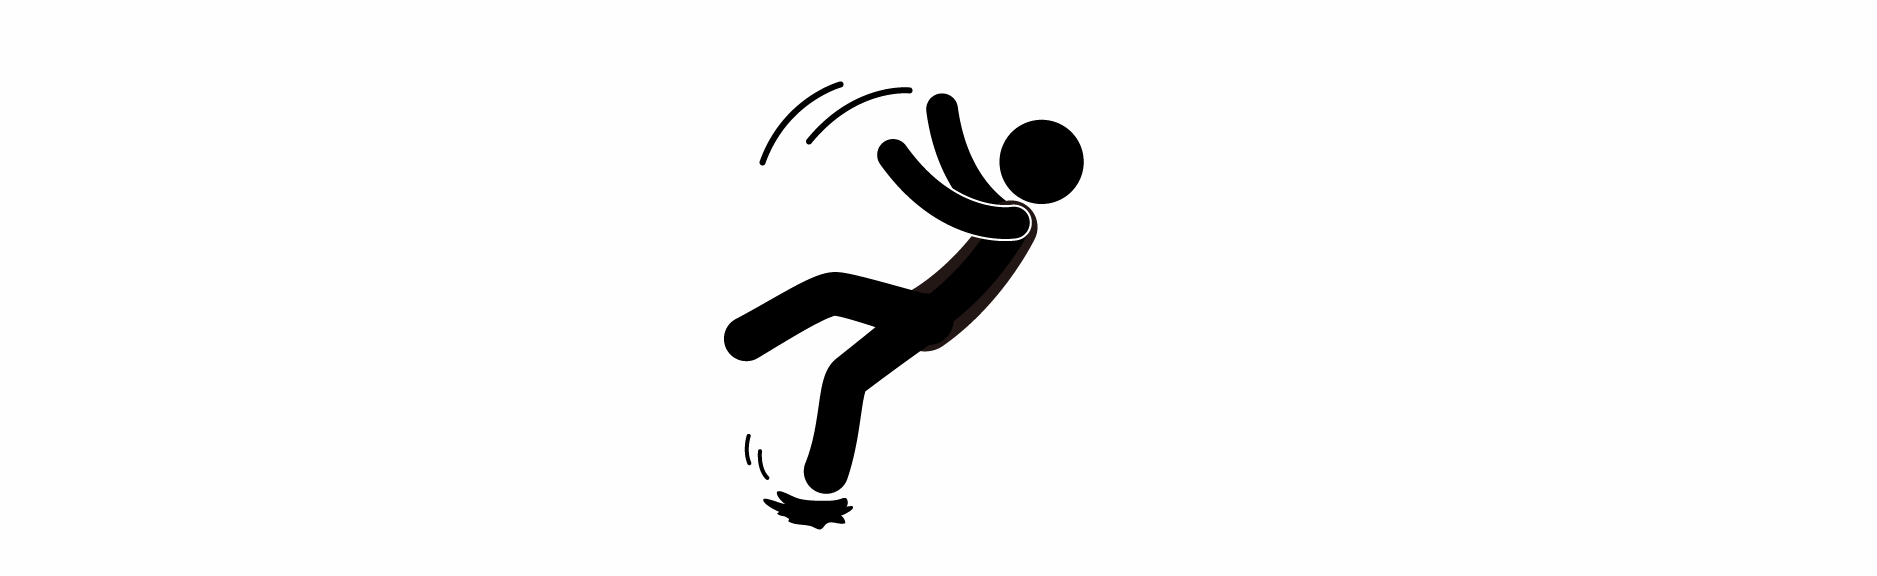 Black and white clipart someone falling down banner transparent Falling Person Clipart | Free download best Falling Person Clipart ... banner transparent